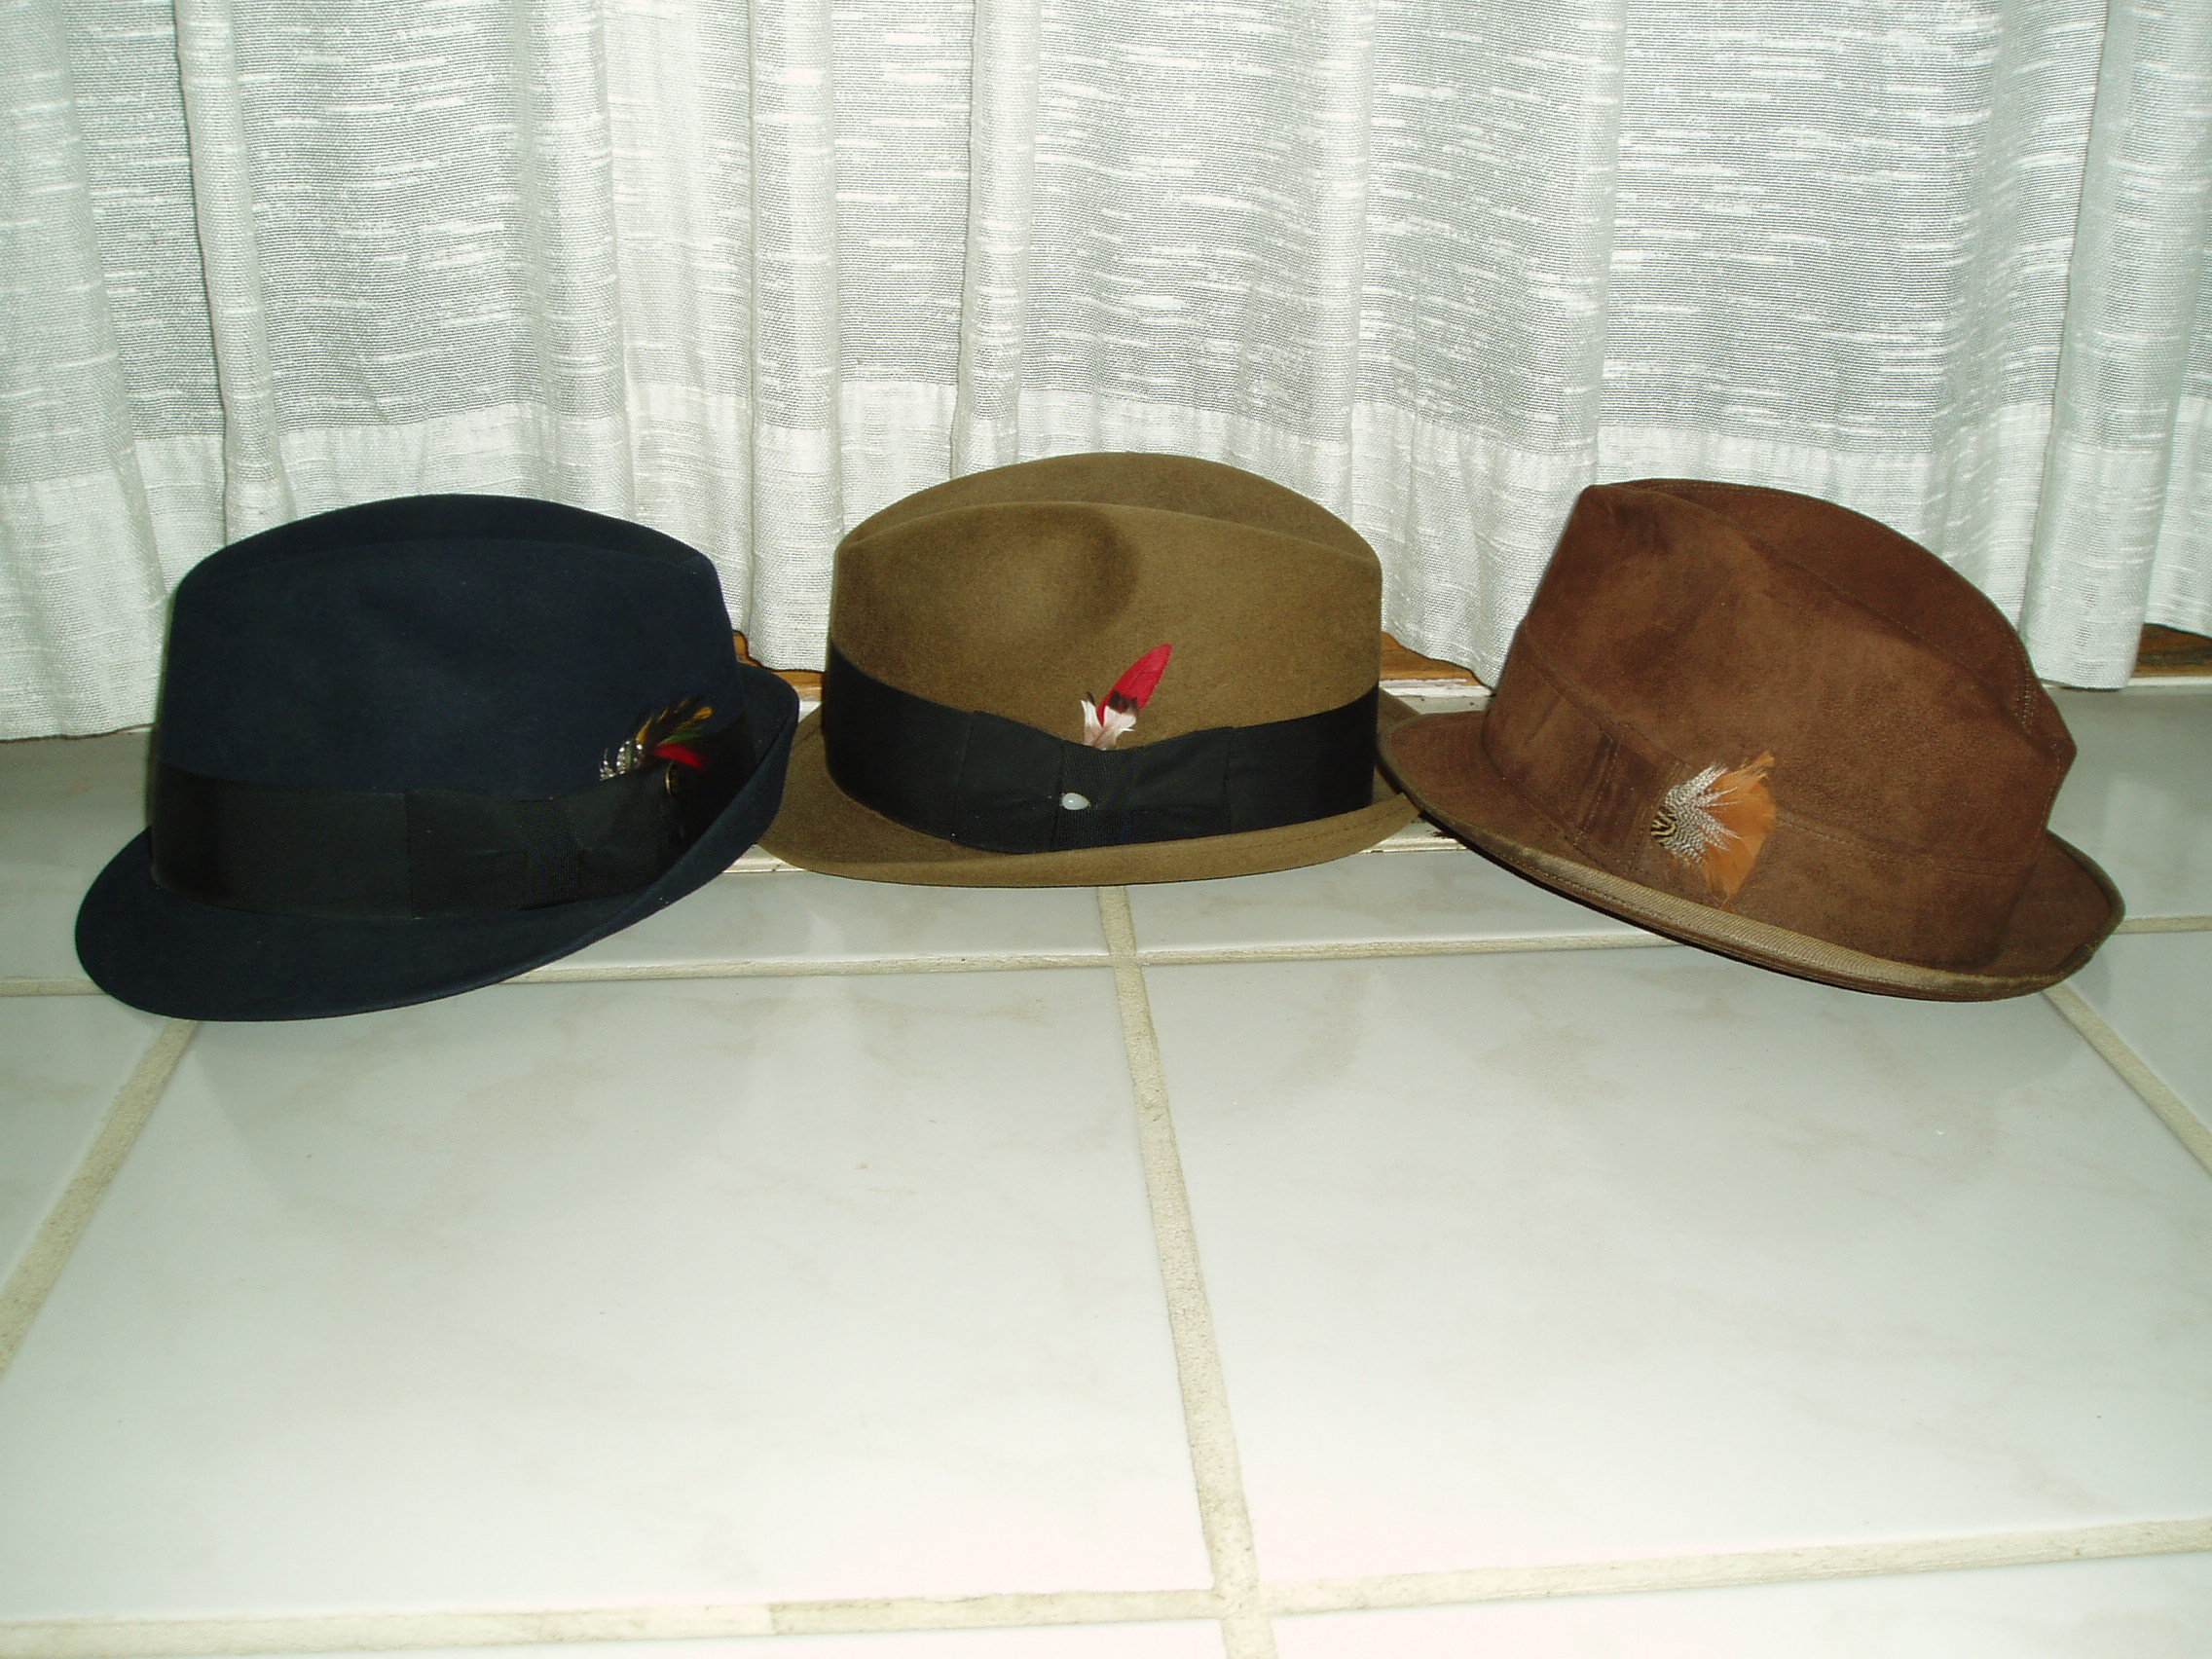 3 TRUE VINTAGE 1960's MEN'S HATS - STETSON, FELT OR LEATHER